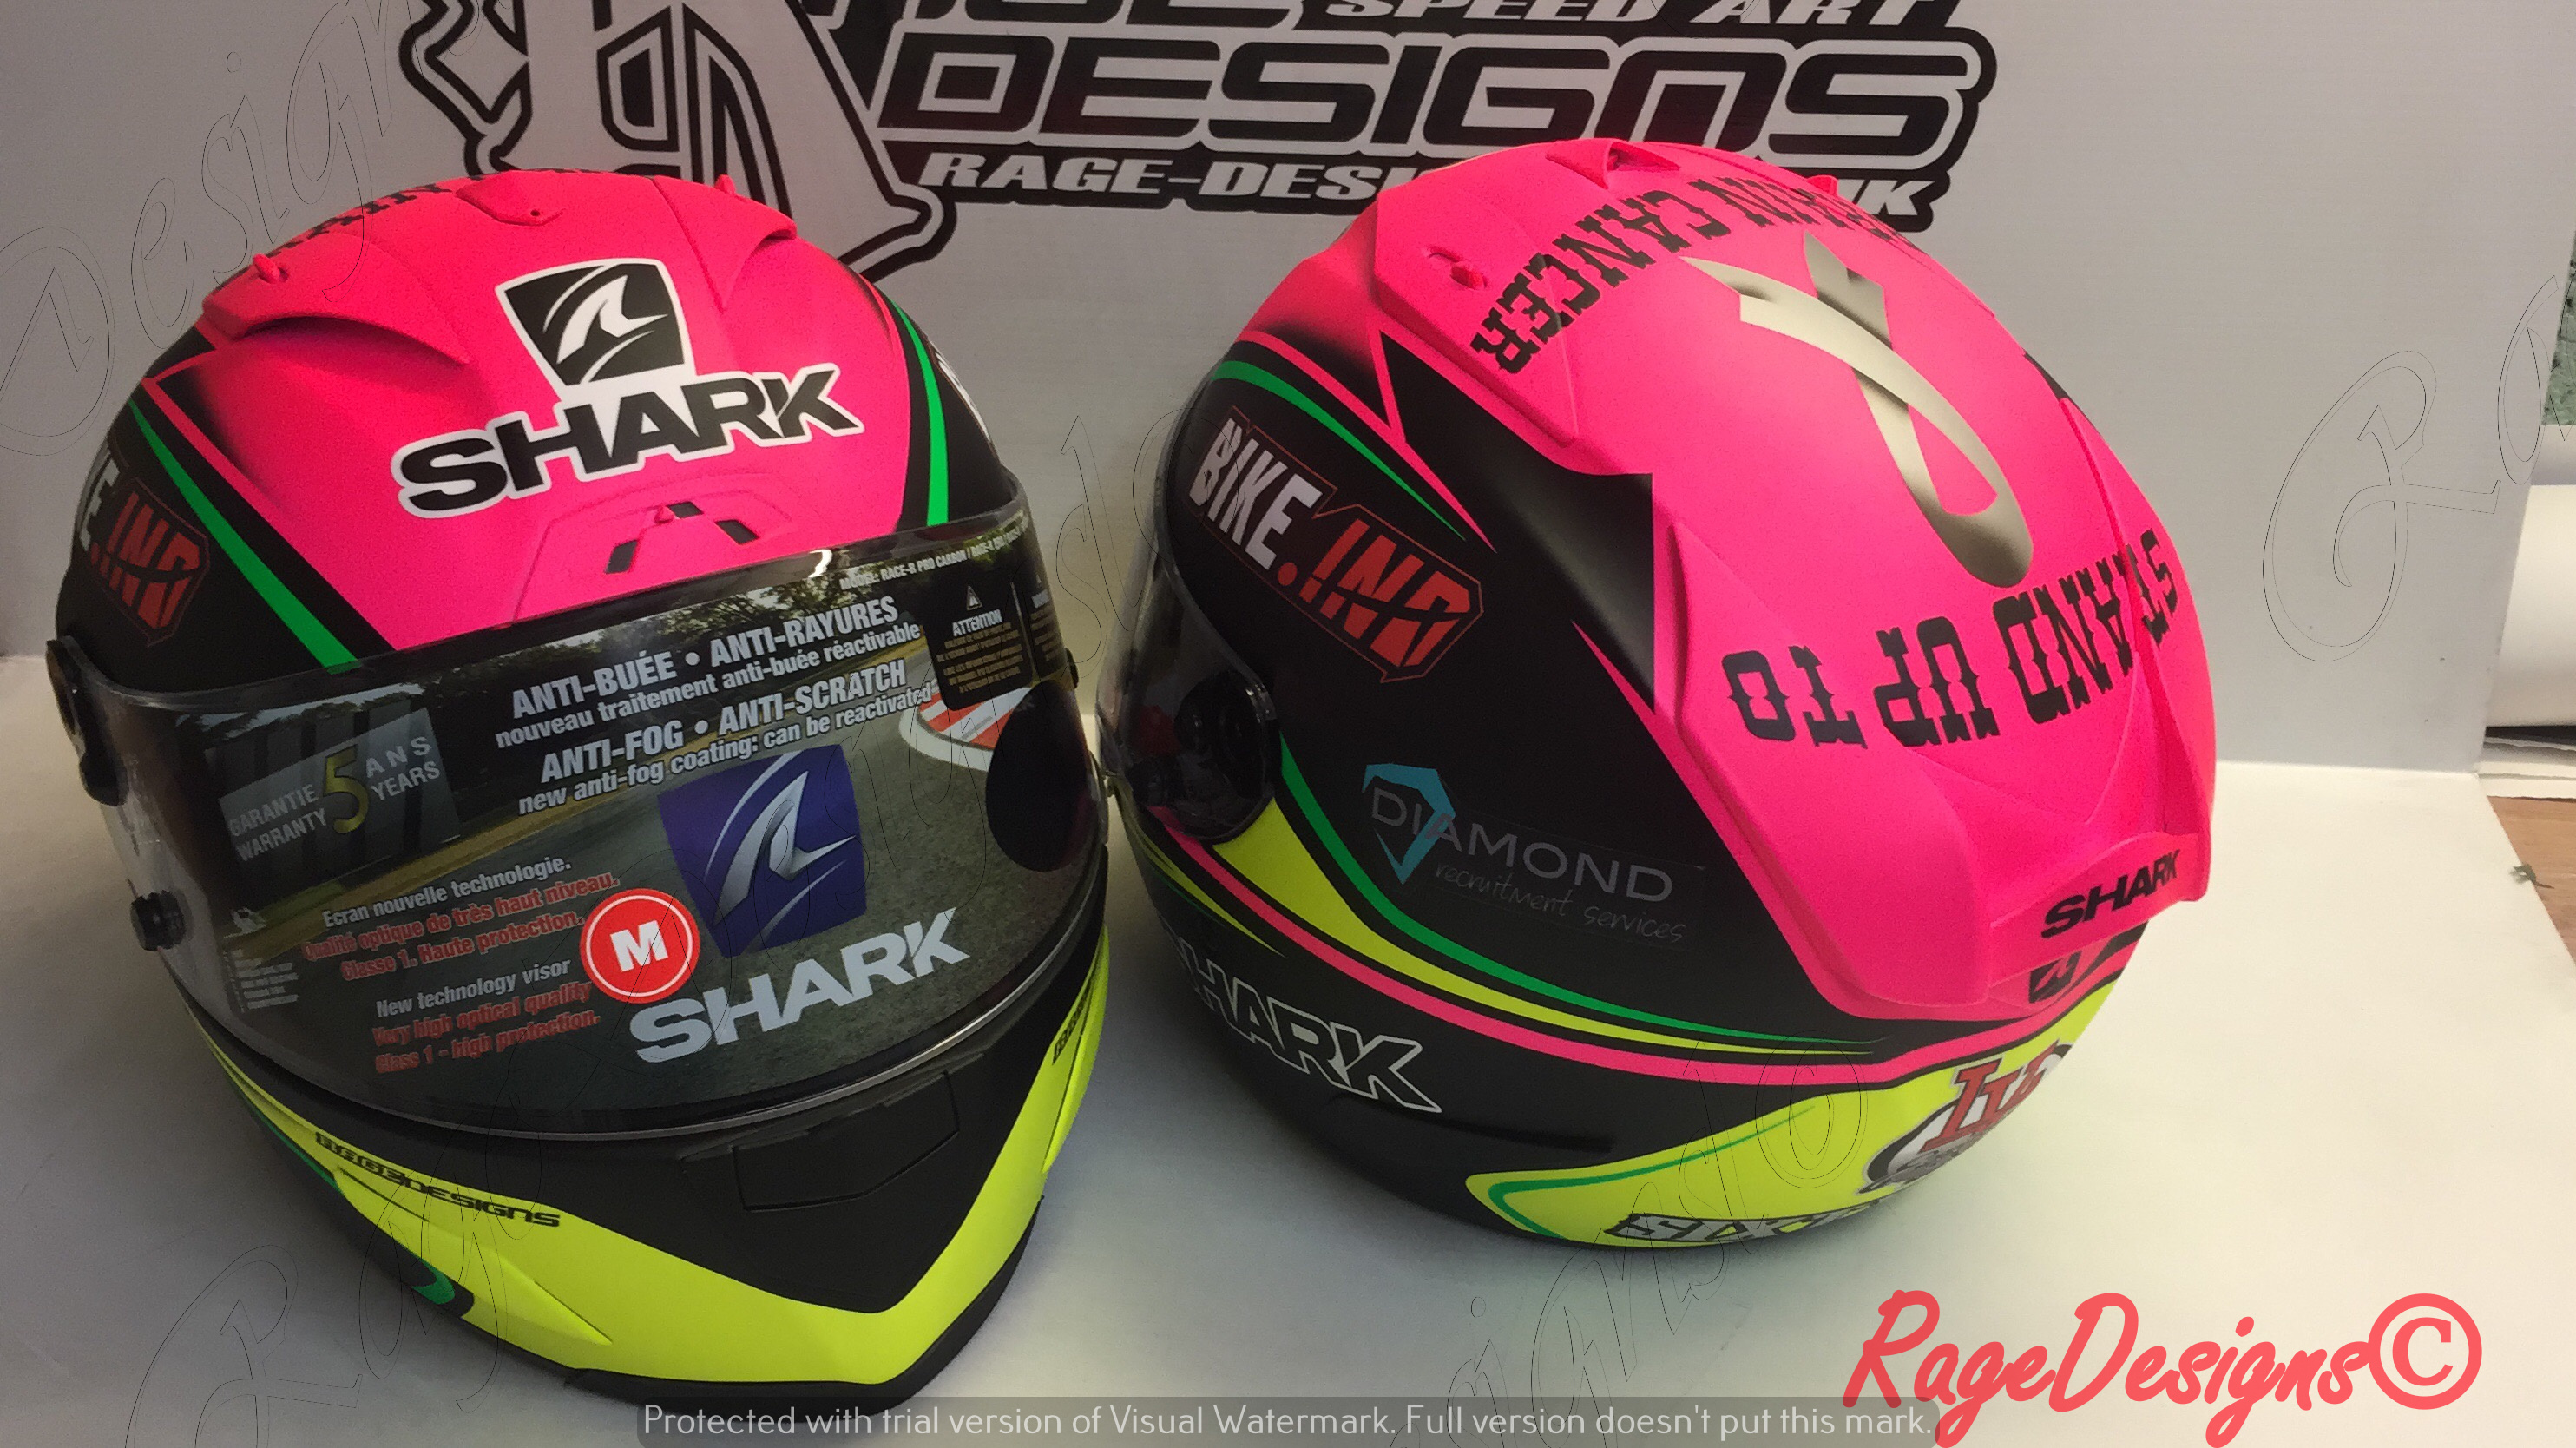 Race Helmets by Rage Designs